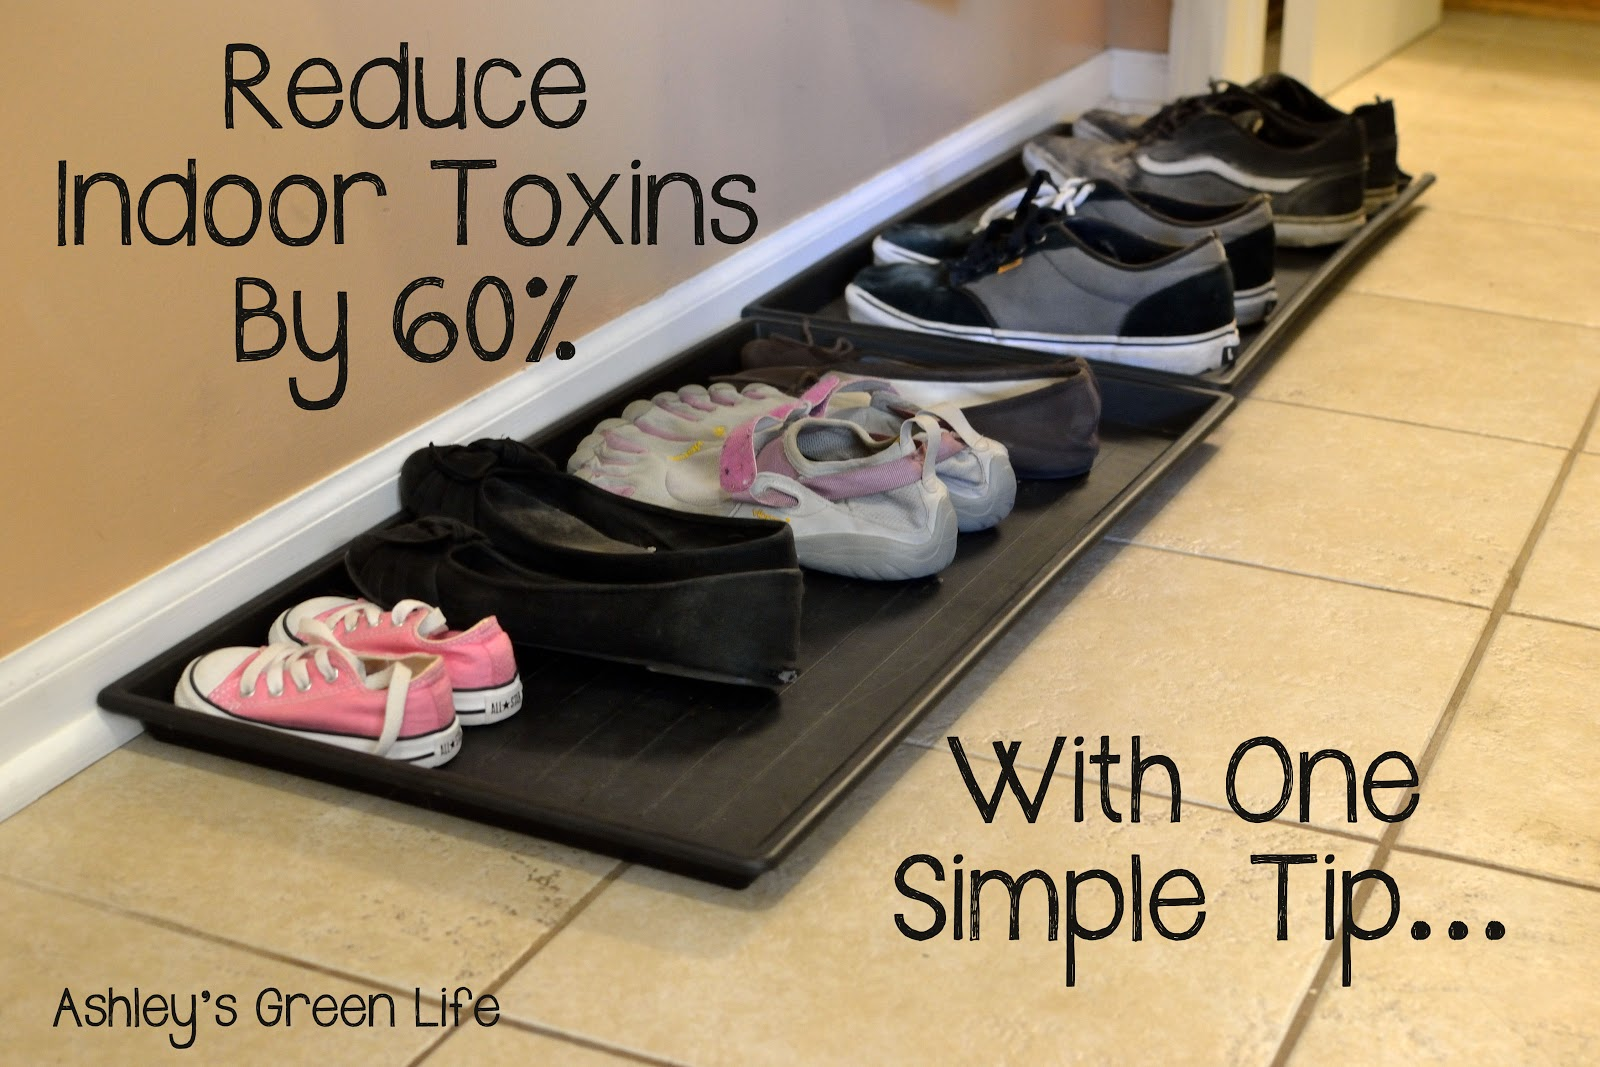 Charmant Reduce Indoor Toxins By 60% With One Tip.